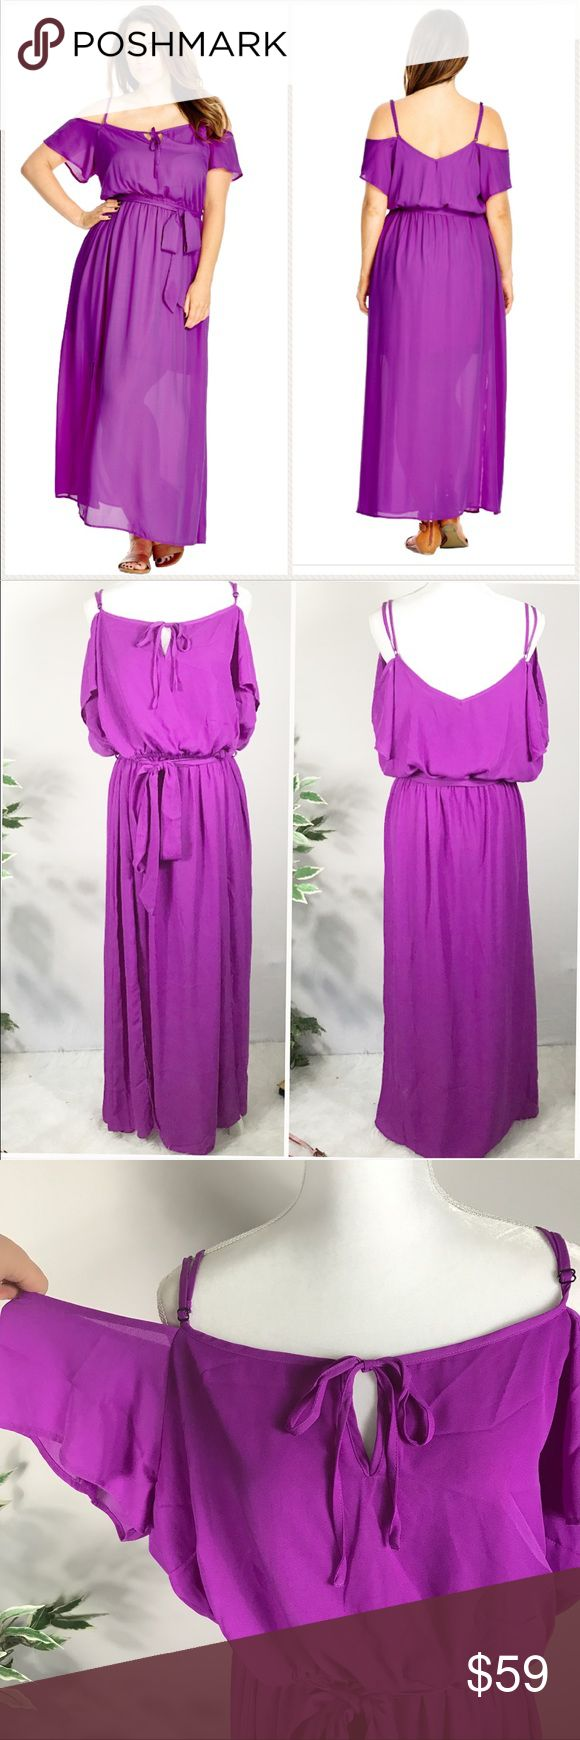 "20 plus size Cold Shoulder Maxi Dress purple solid Vibrant purple color energizes the floaty boho silhouette of a chiffon maxi dress that spotlights pretty shoulders and sun-kissed skin. A sash at the waist polishes the pretty style. Approx 36"" center front length . Elastic waist. (See size chart ) city chic L/20  Slips on over head. Split neck with ties. Adjustable shoulder straps. Short sleeves. Elasticized waist. Removable sash tie. Lined. 100% polyester. Machine wash cold, line dry City…"